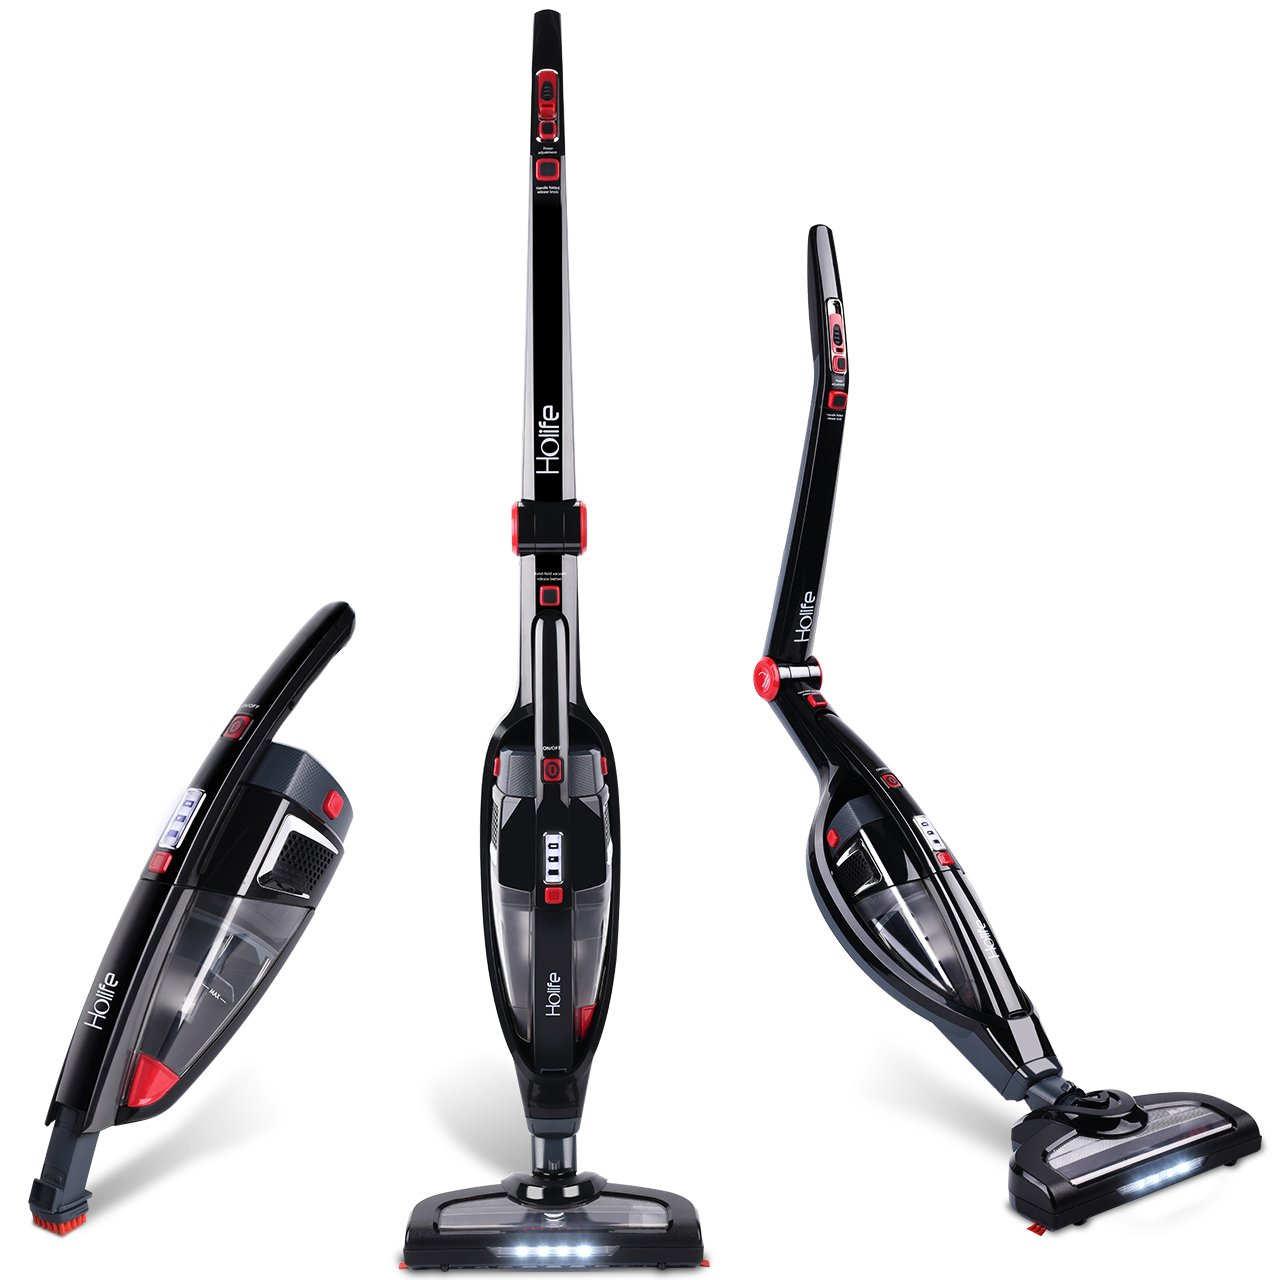 2 in 1 Handheld Upright Cordless Stick Rechargeable Vacuum Cleaner